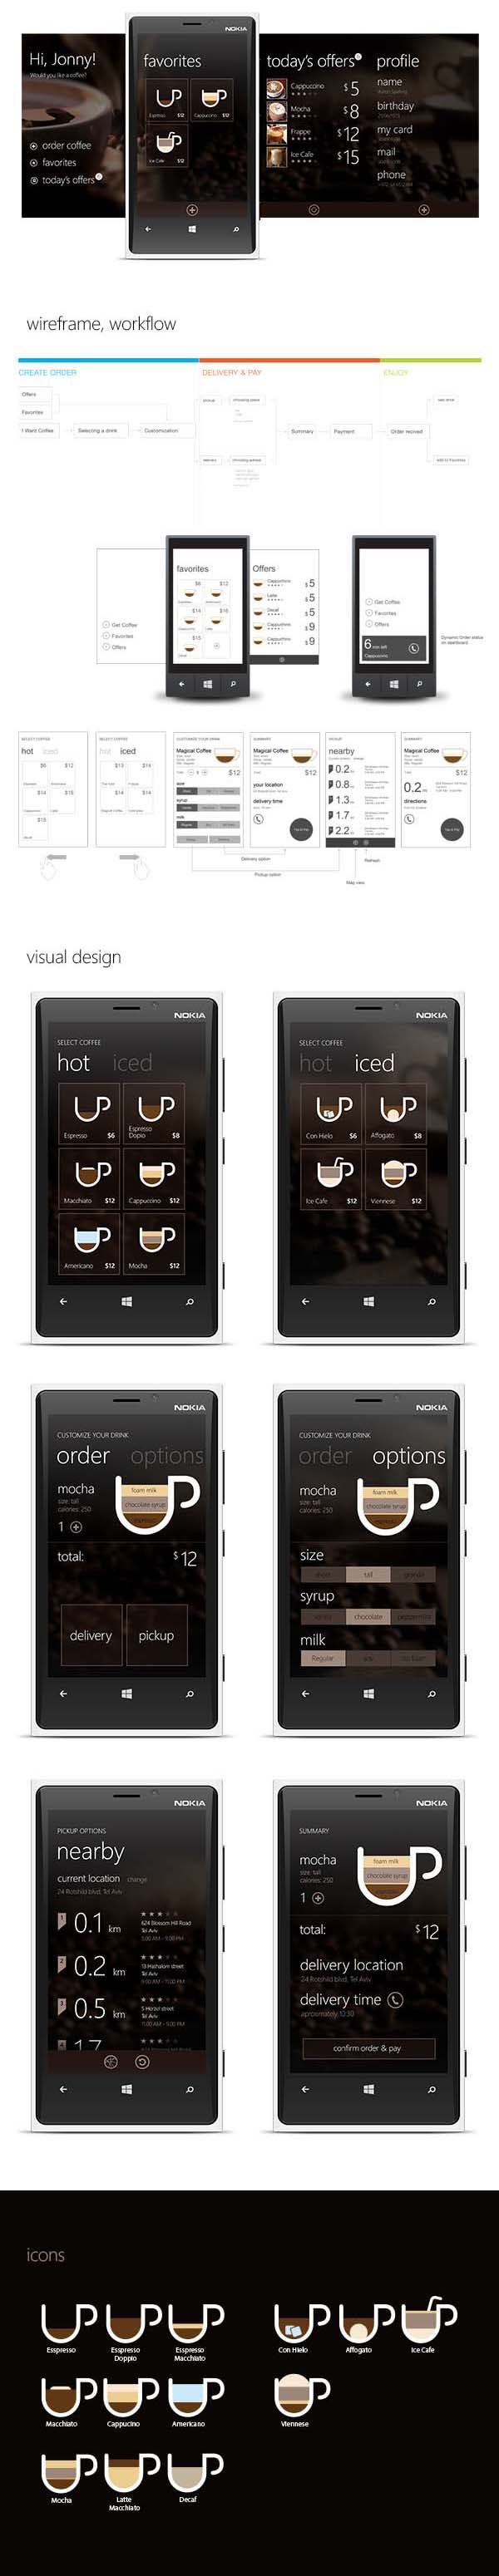 Coffee App - User Interface Design by Michael Novoselov for Windows Phone